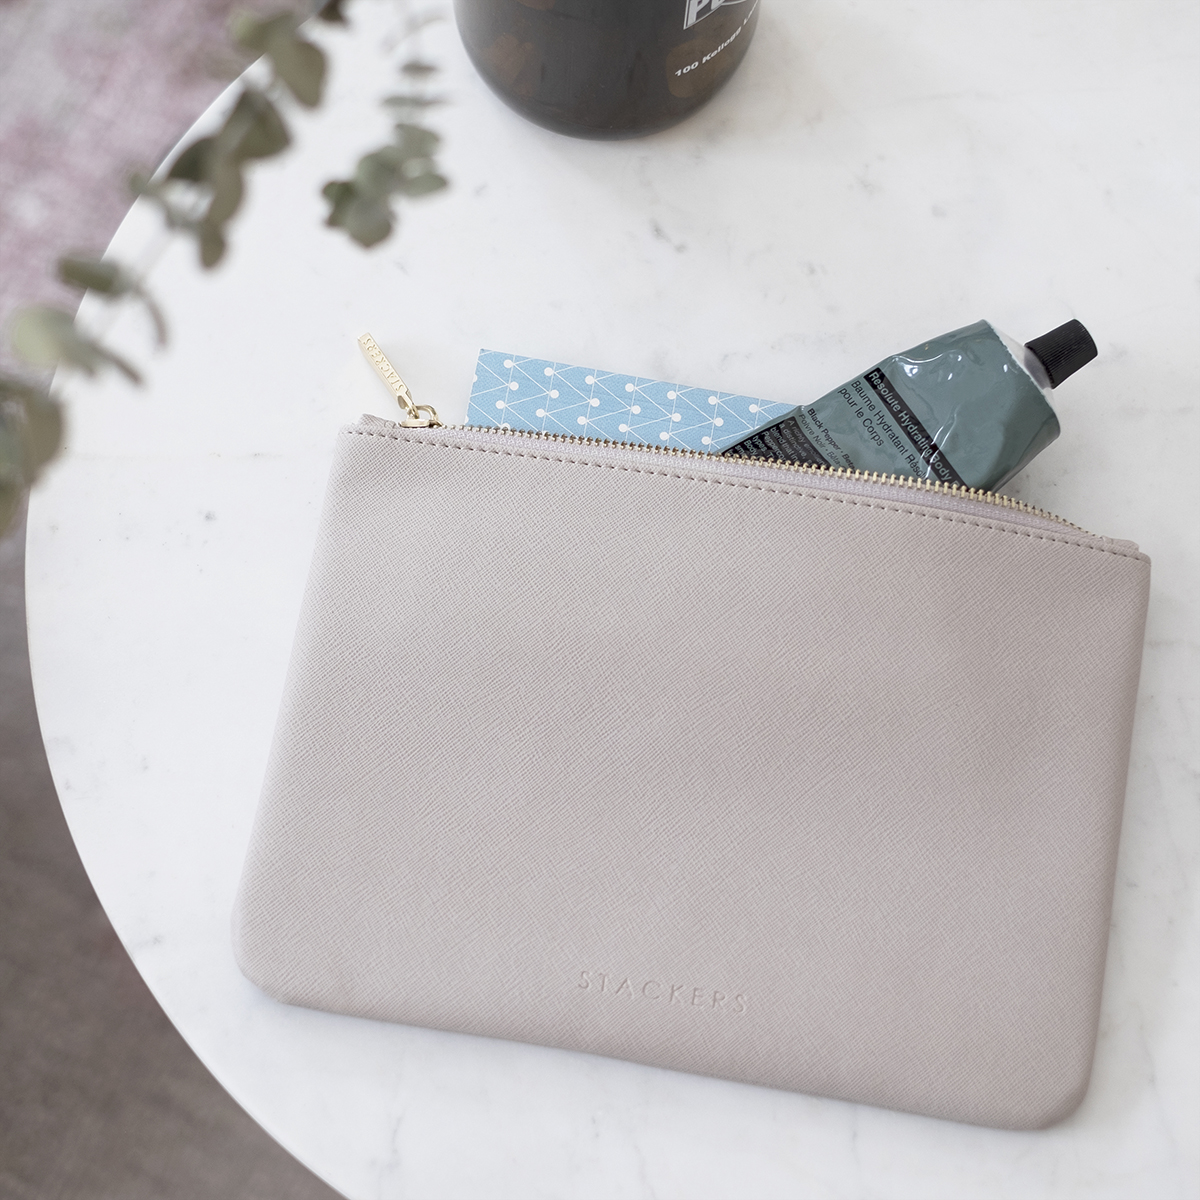 Stackers Taupe Pouch